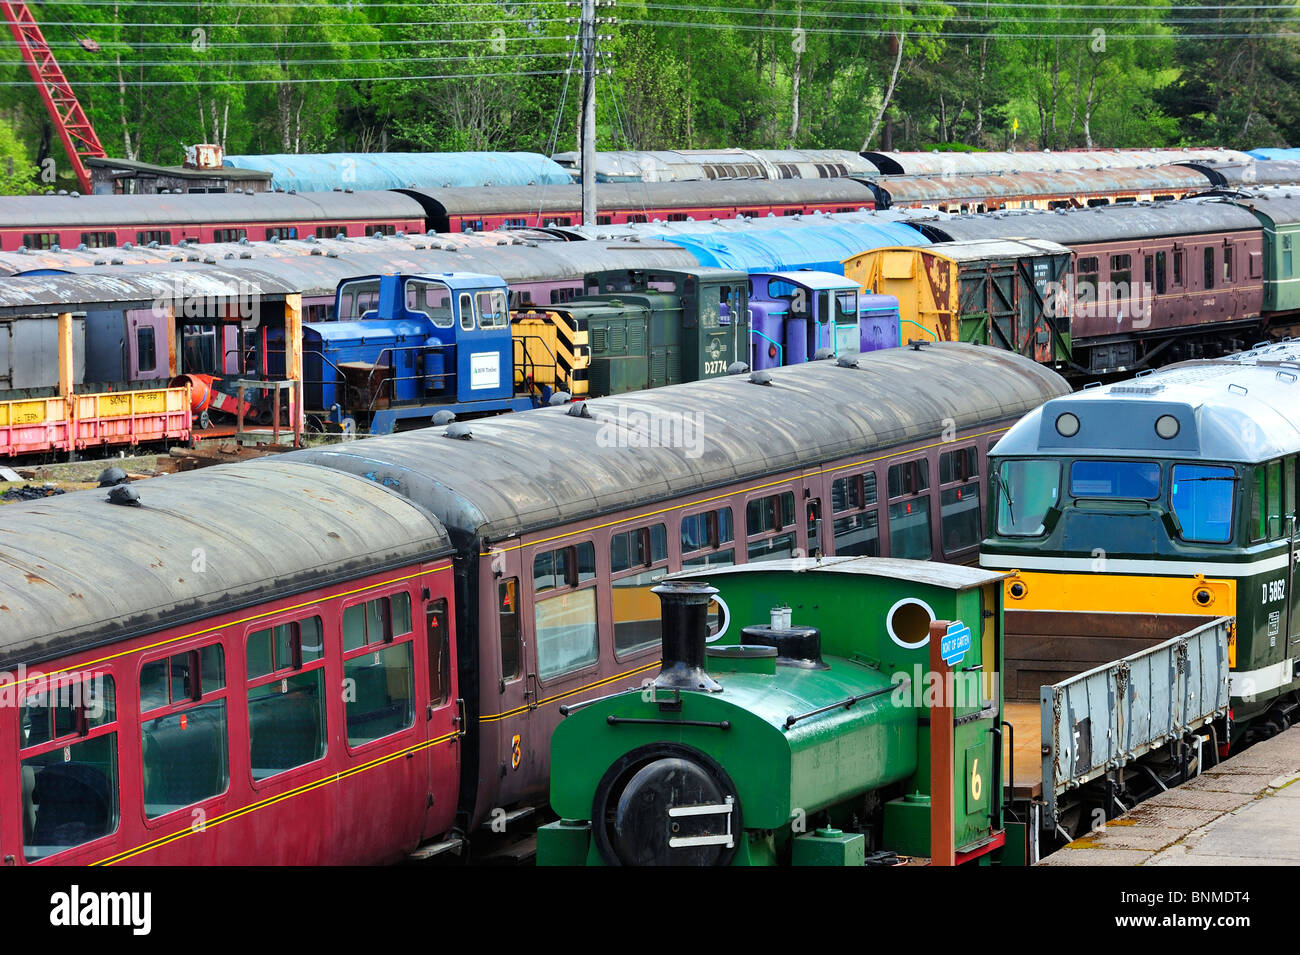 Locomotives and carriages at the Boat of Garten railway station, Scotland, UK - Stock Image